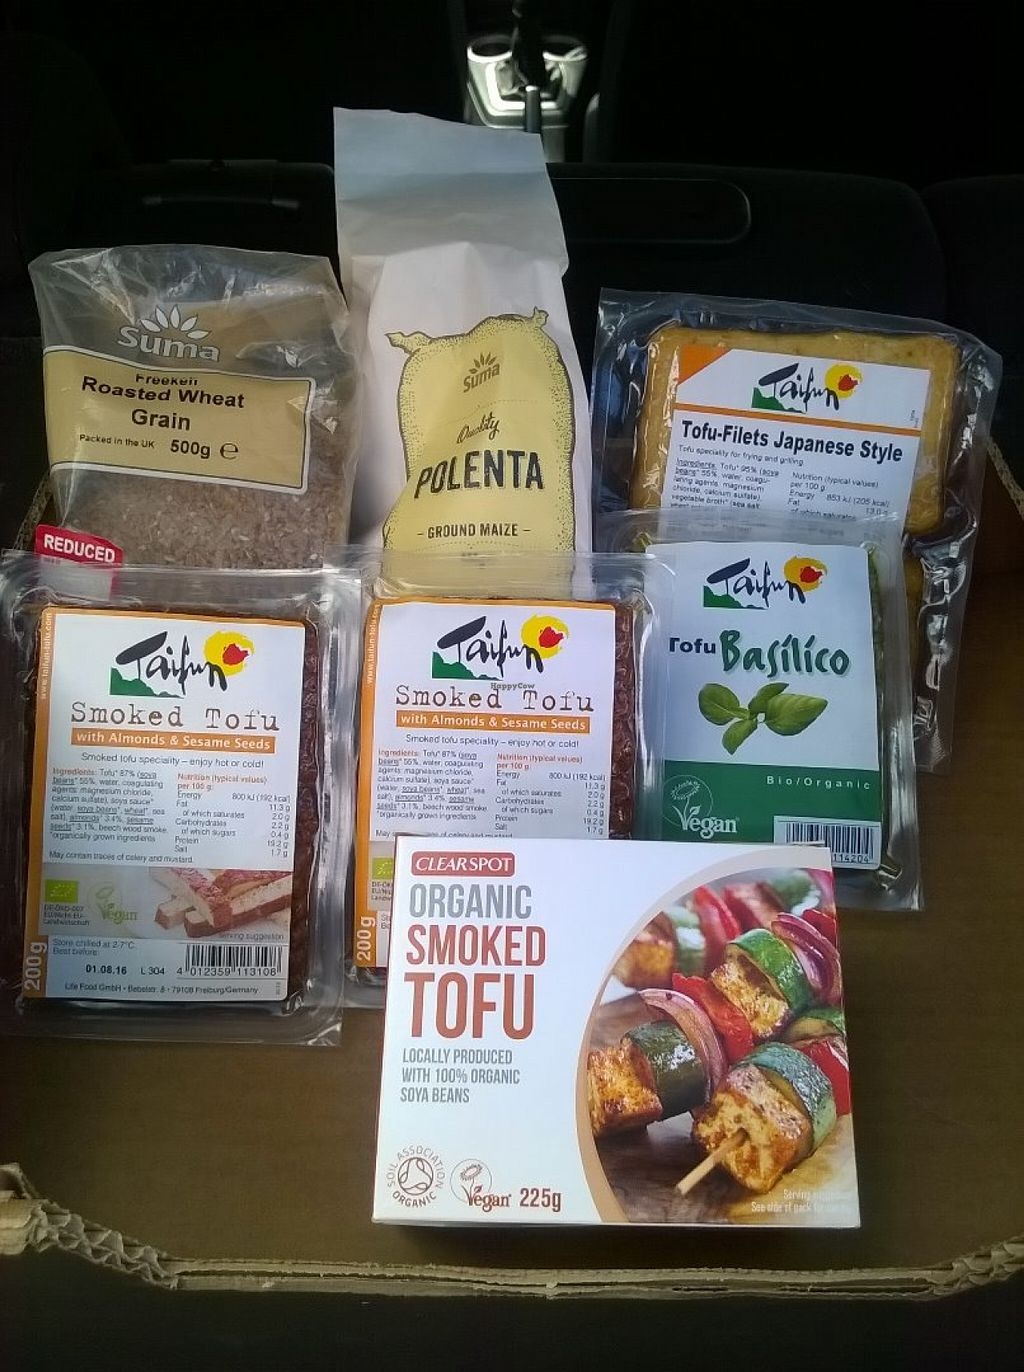 """Photo of The Honey Tree  by <a href=""""/members/profile/deadpledge"""">deadpledge</a> <br/>Tofu, freekeh, polenta selection <br/> June 23, 2016  - <a href='/contact/abuse/image/50761/155684'>Report</a>"""